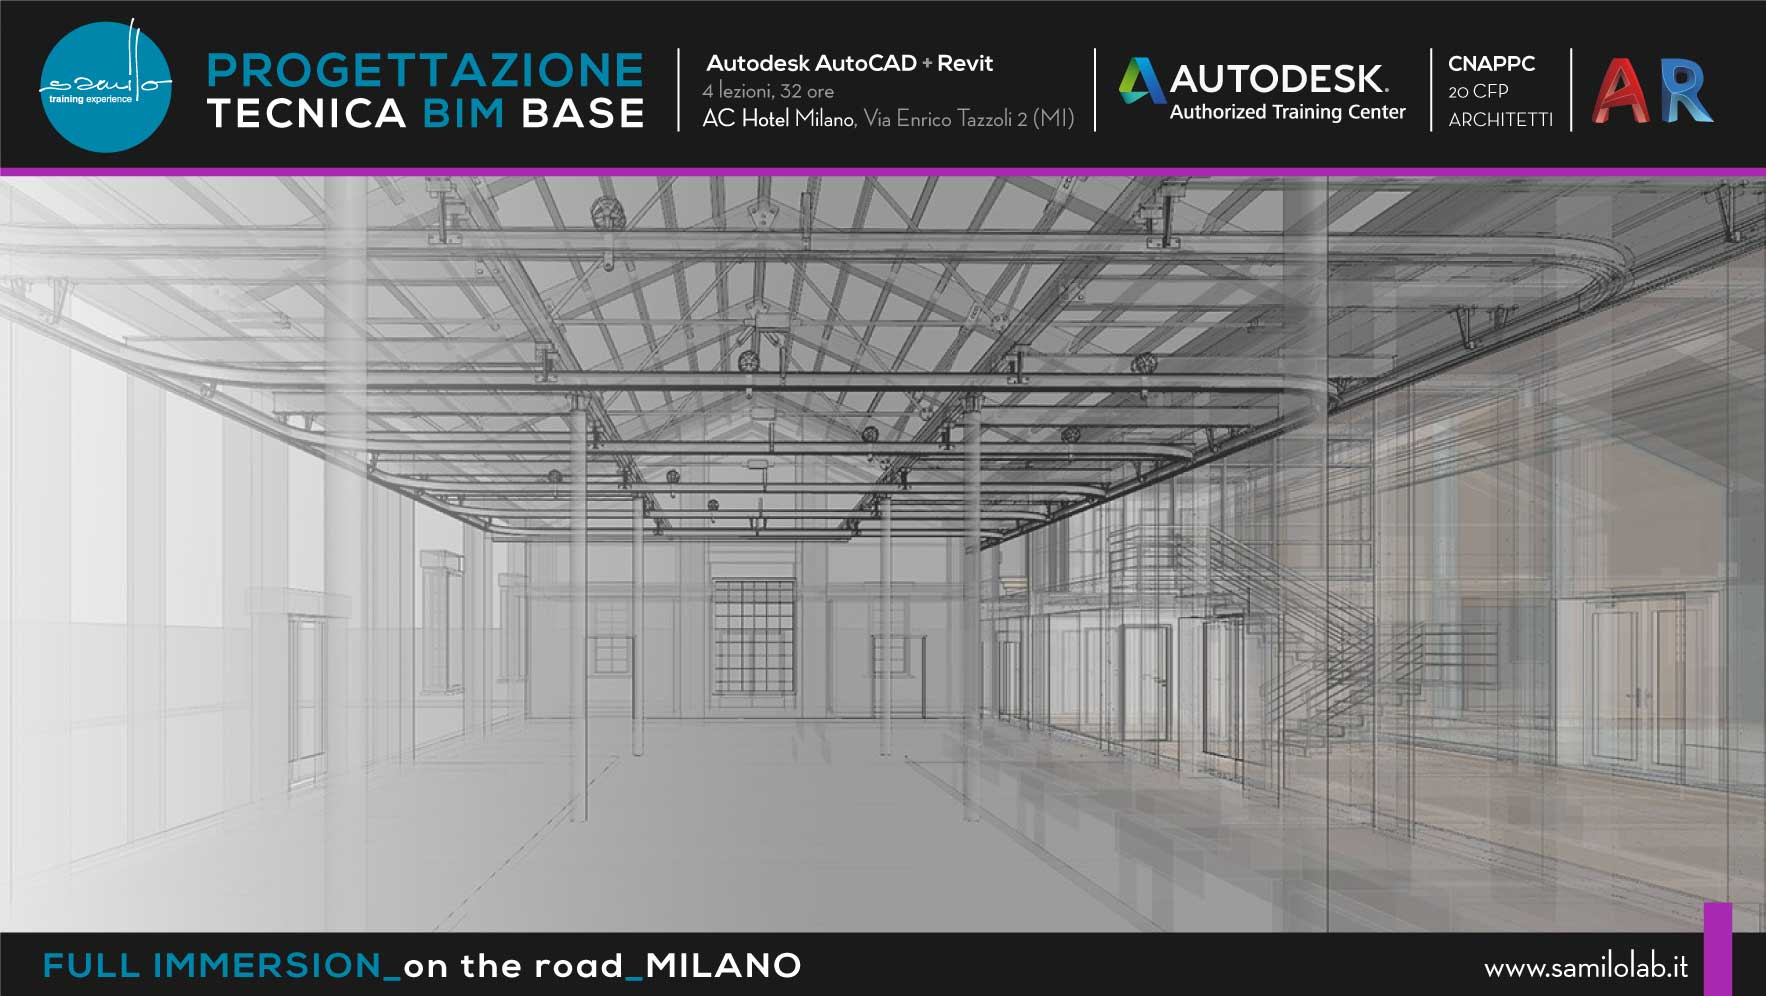 036-progettazione-tecnica-bim_full-on-the-road-min